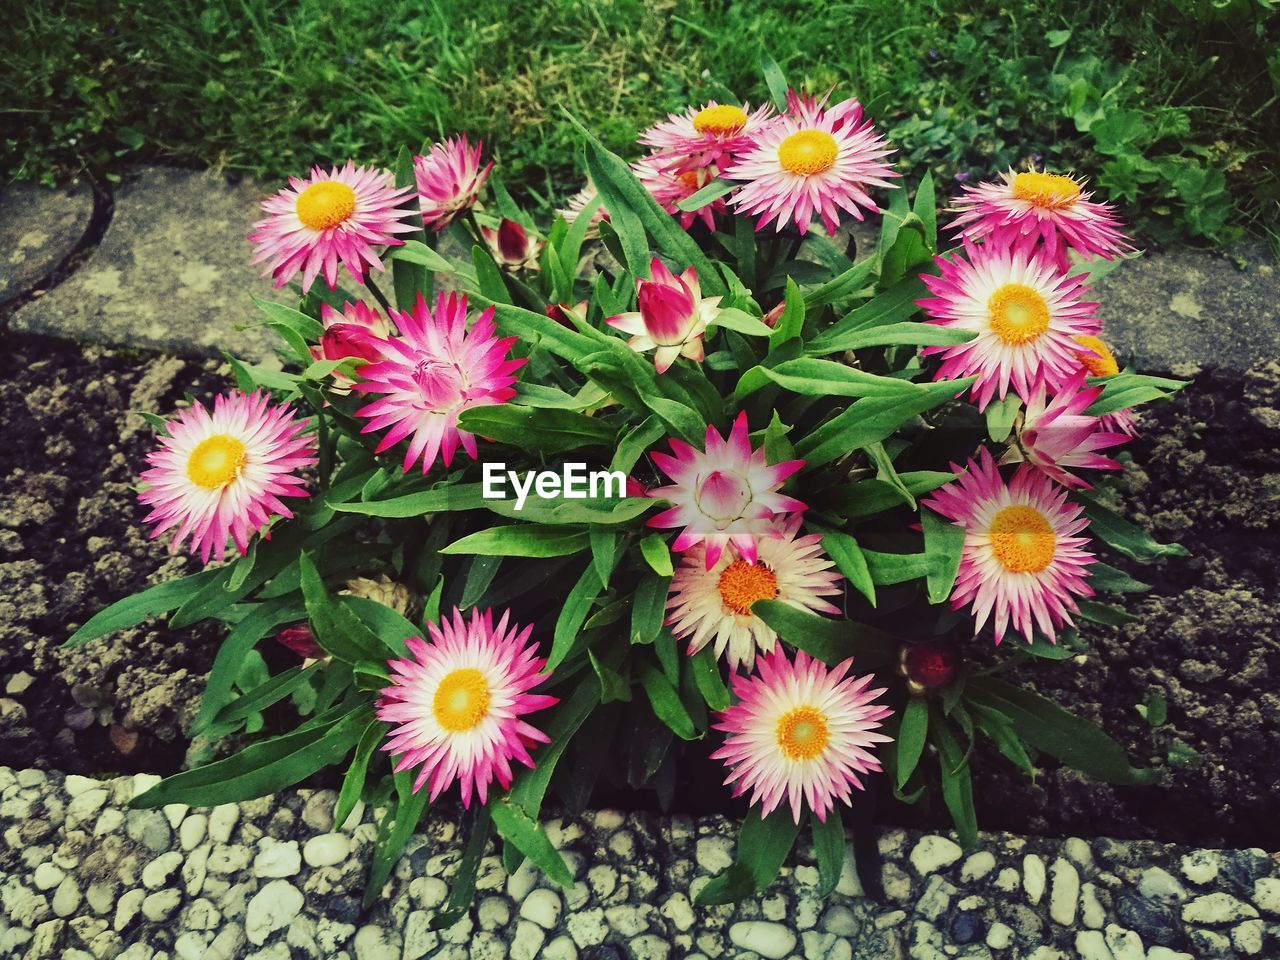 flower, nature, growth, petal, fragility, beauty in nature, freshness, high angle view, flower head, plant, outdoors, blooming, no people, day, field